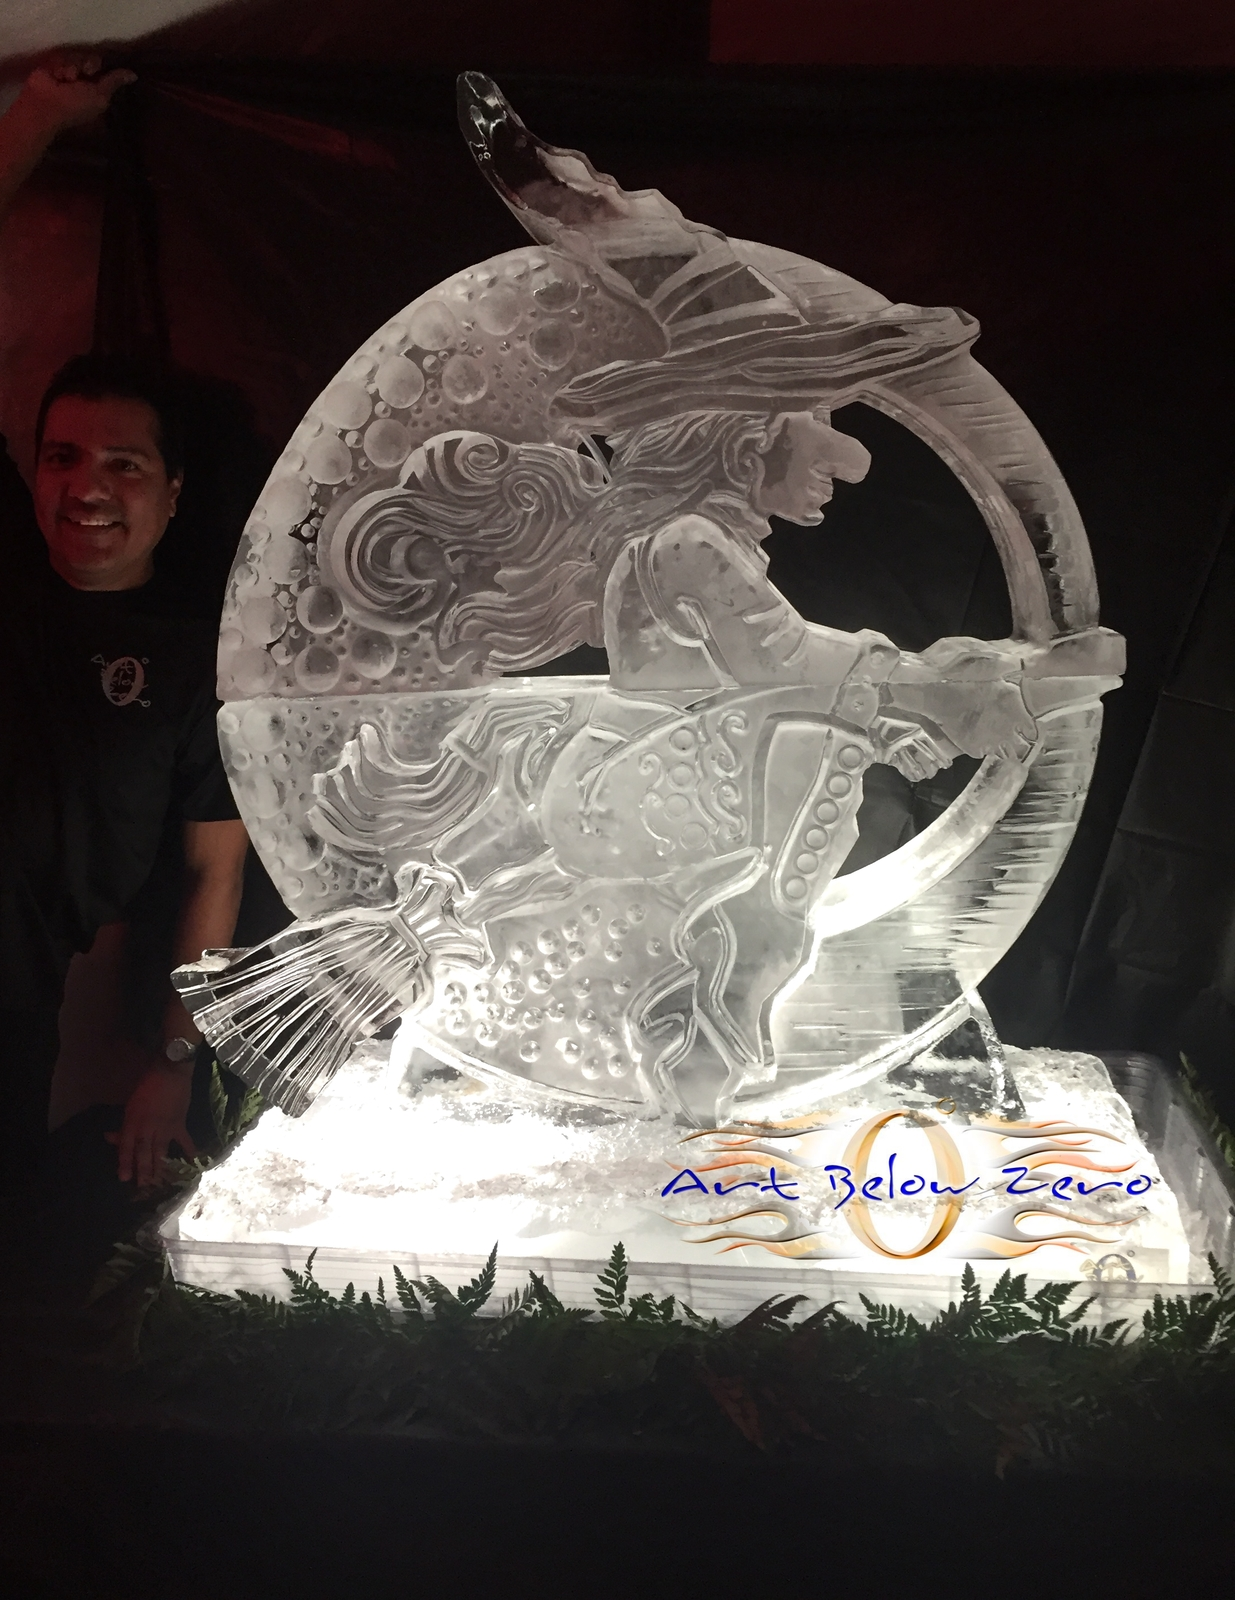 Halloween Ice Sculptures By Art Below Zero additionally LiveEmailStatsFood together with 1329 further Mcupcake28 moreover 7832. on halloween food